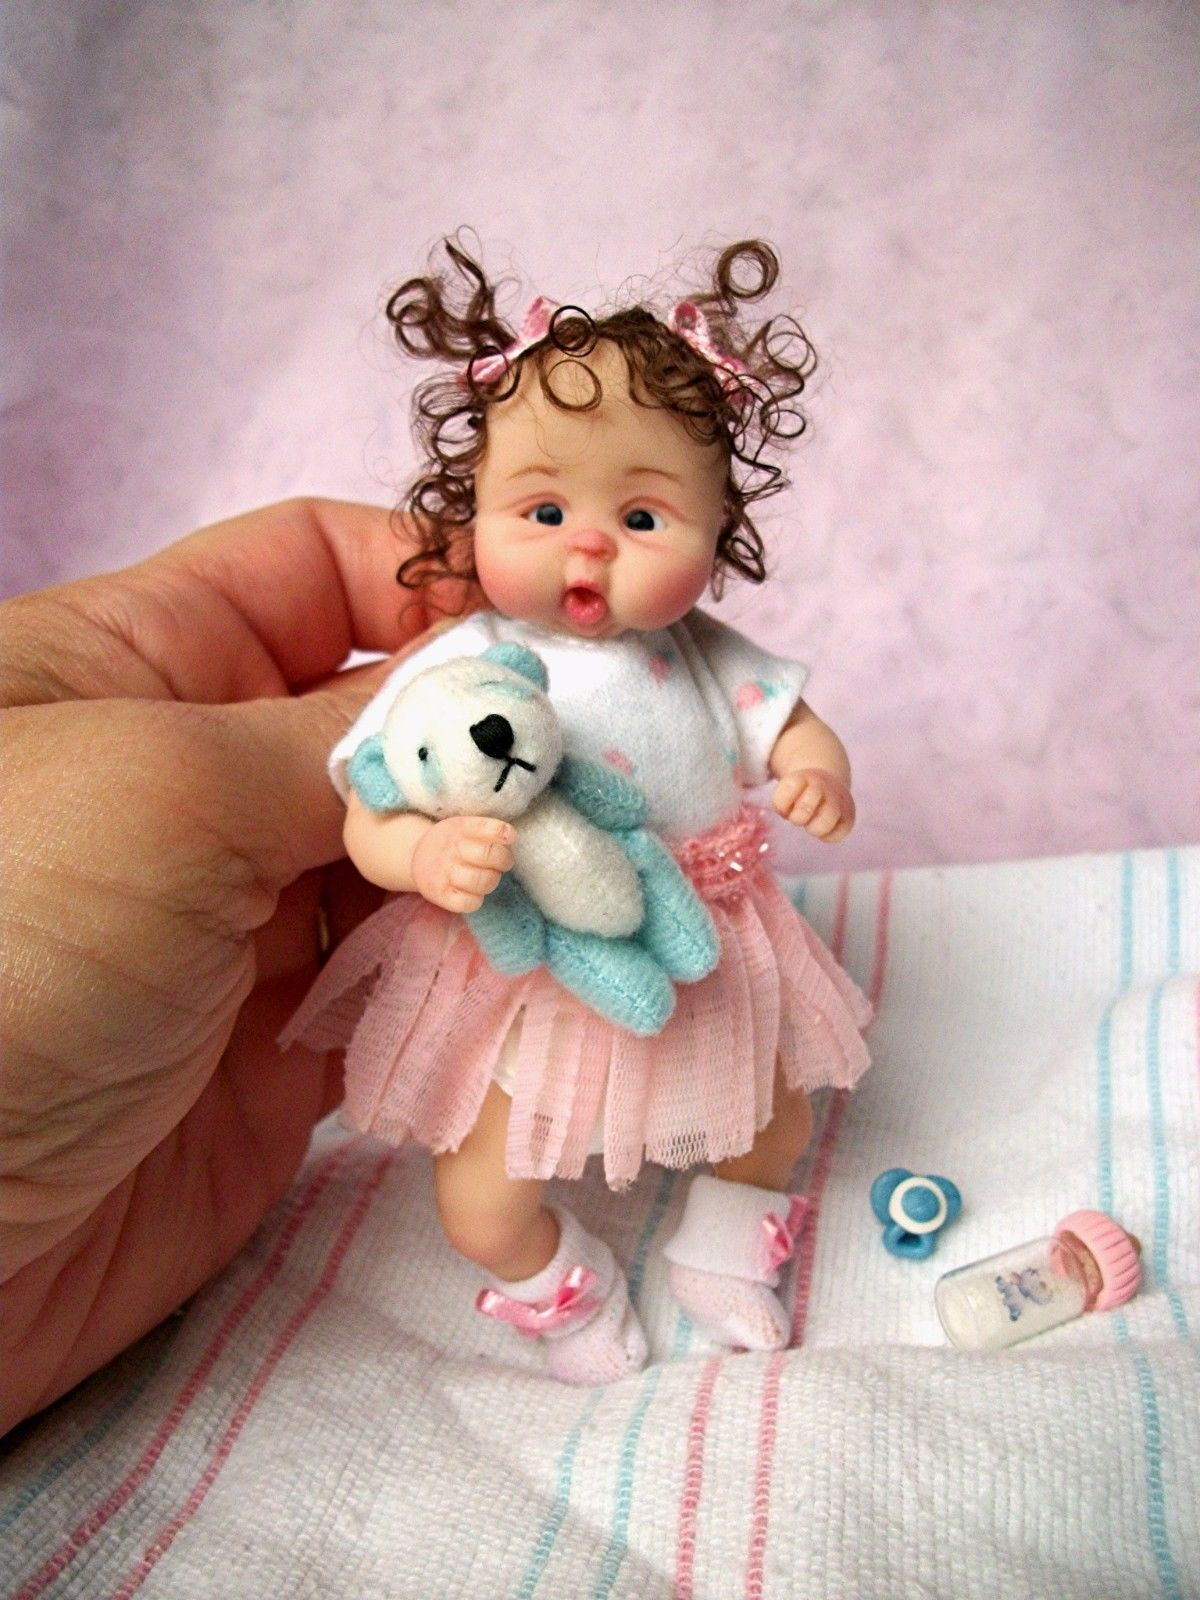 Details about OOAK POLYMER CLAY BABY GIRL FAIRY! MINIATURE